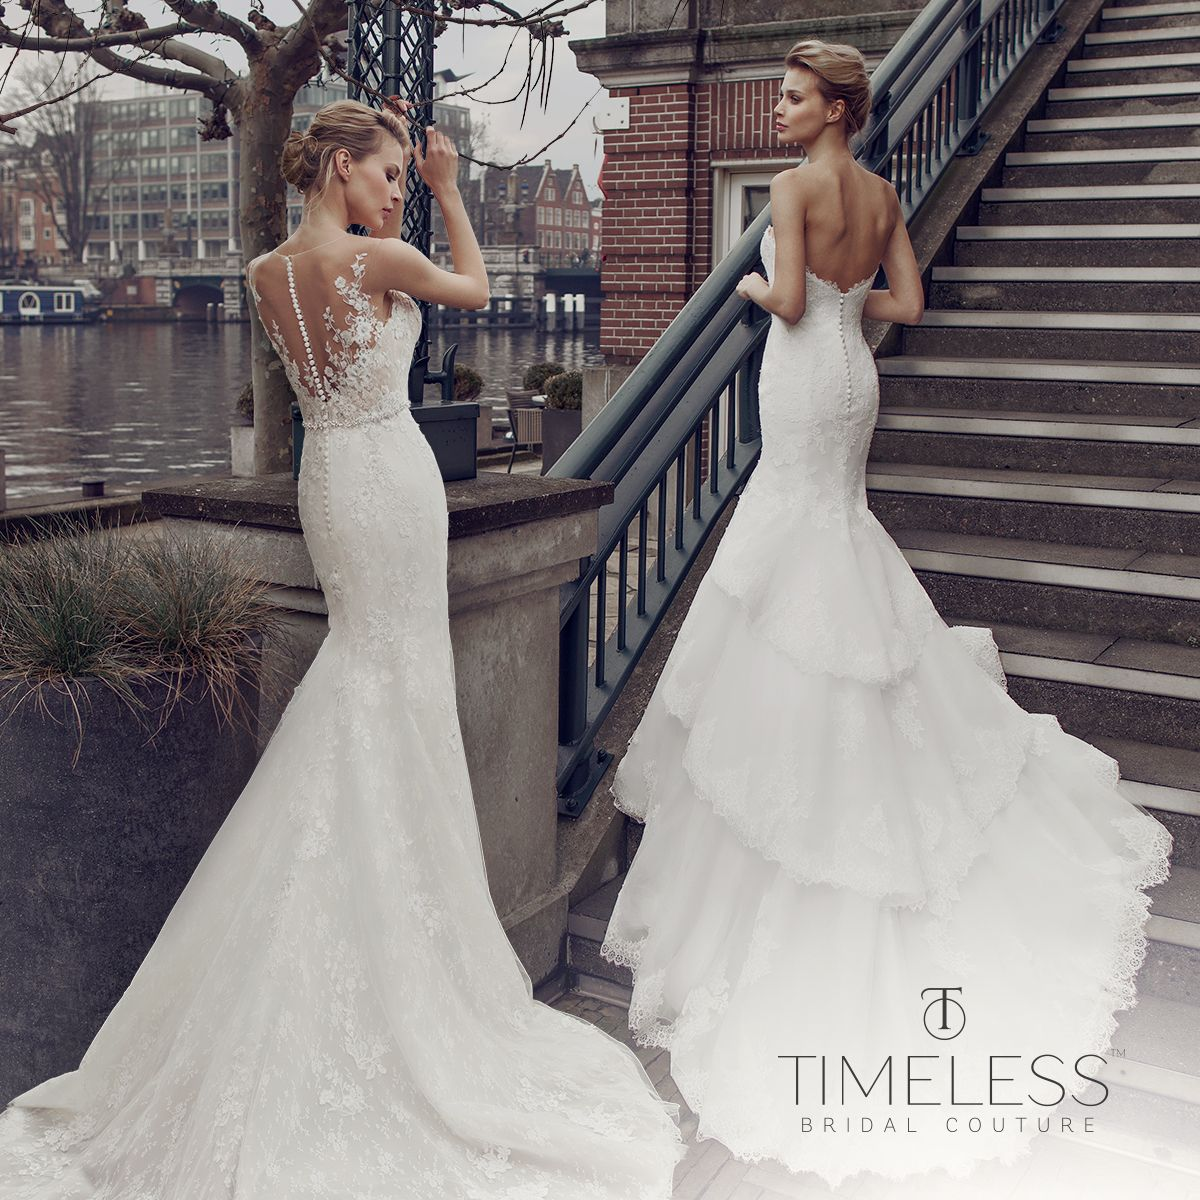 Dramatic Trains A Long Train On Your Wedding Dress Will Give You That Amazing